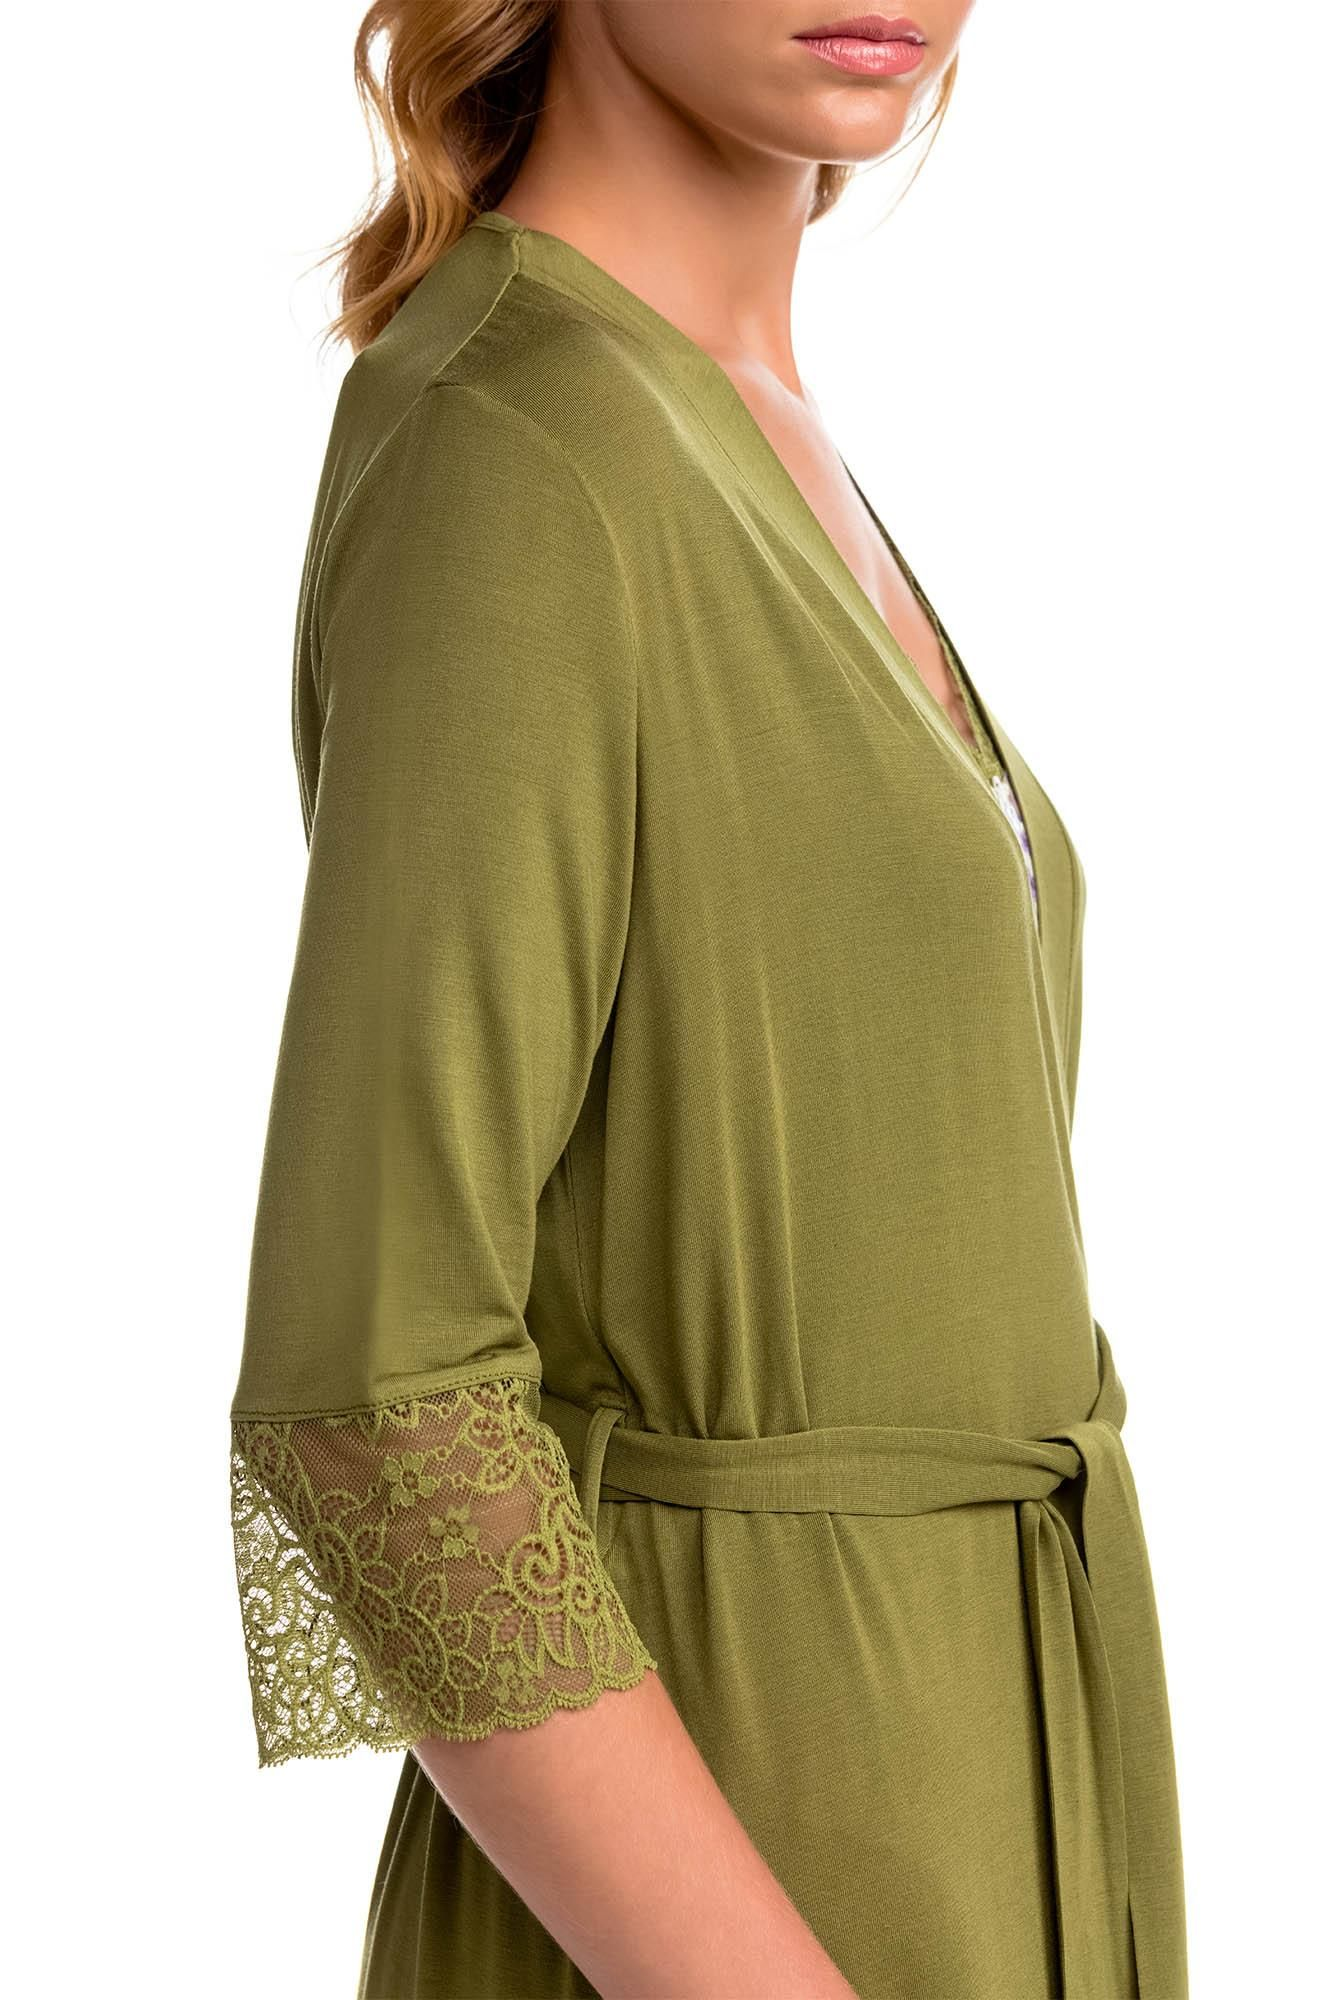 Women's Robe with Lace Details